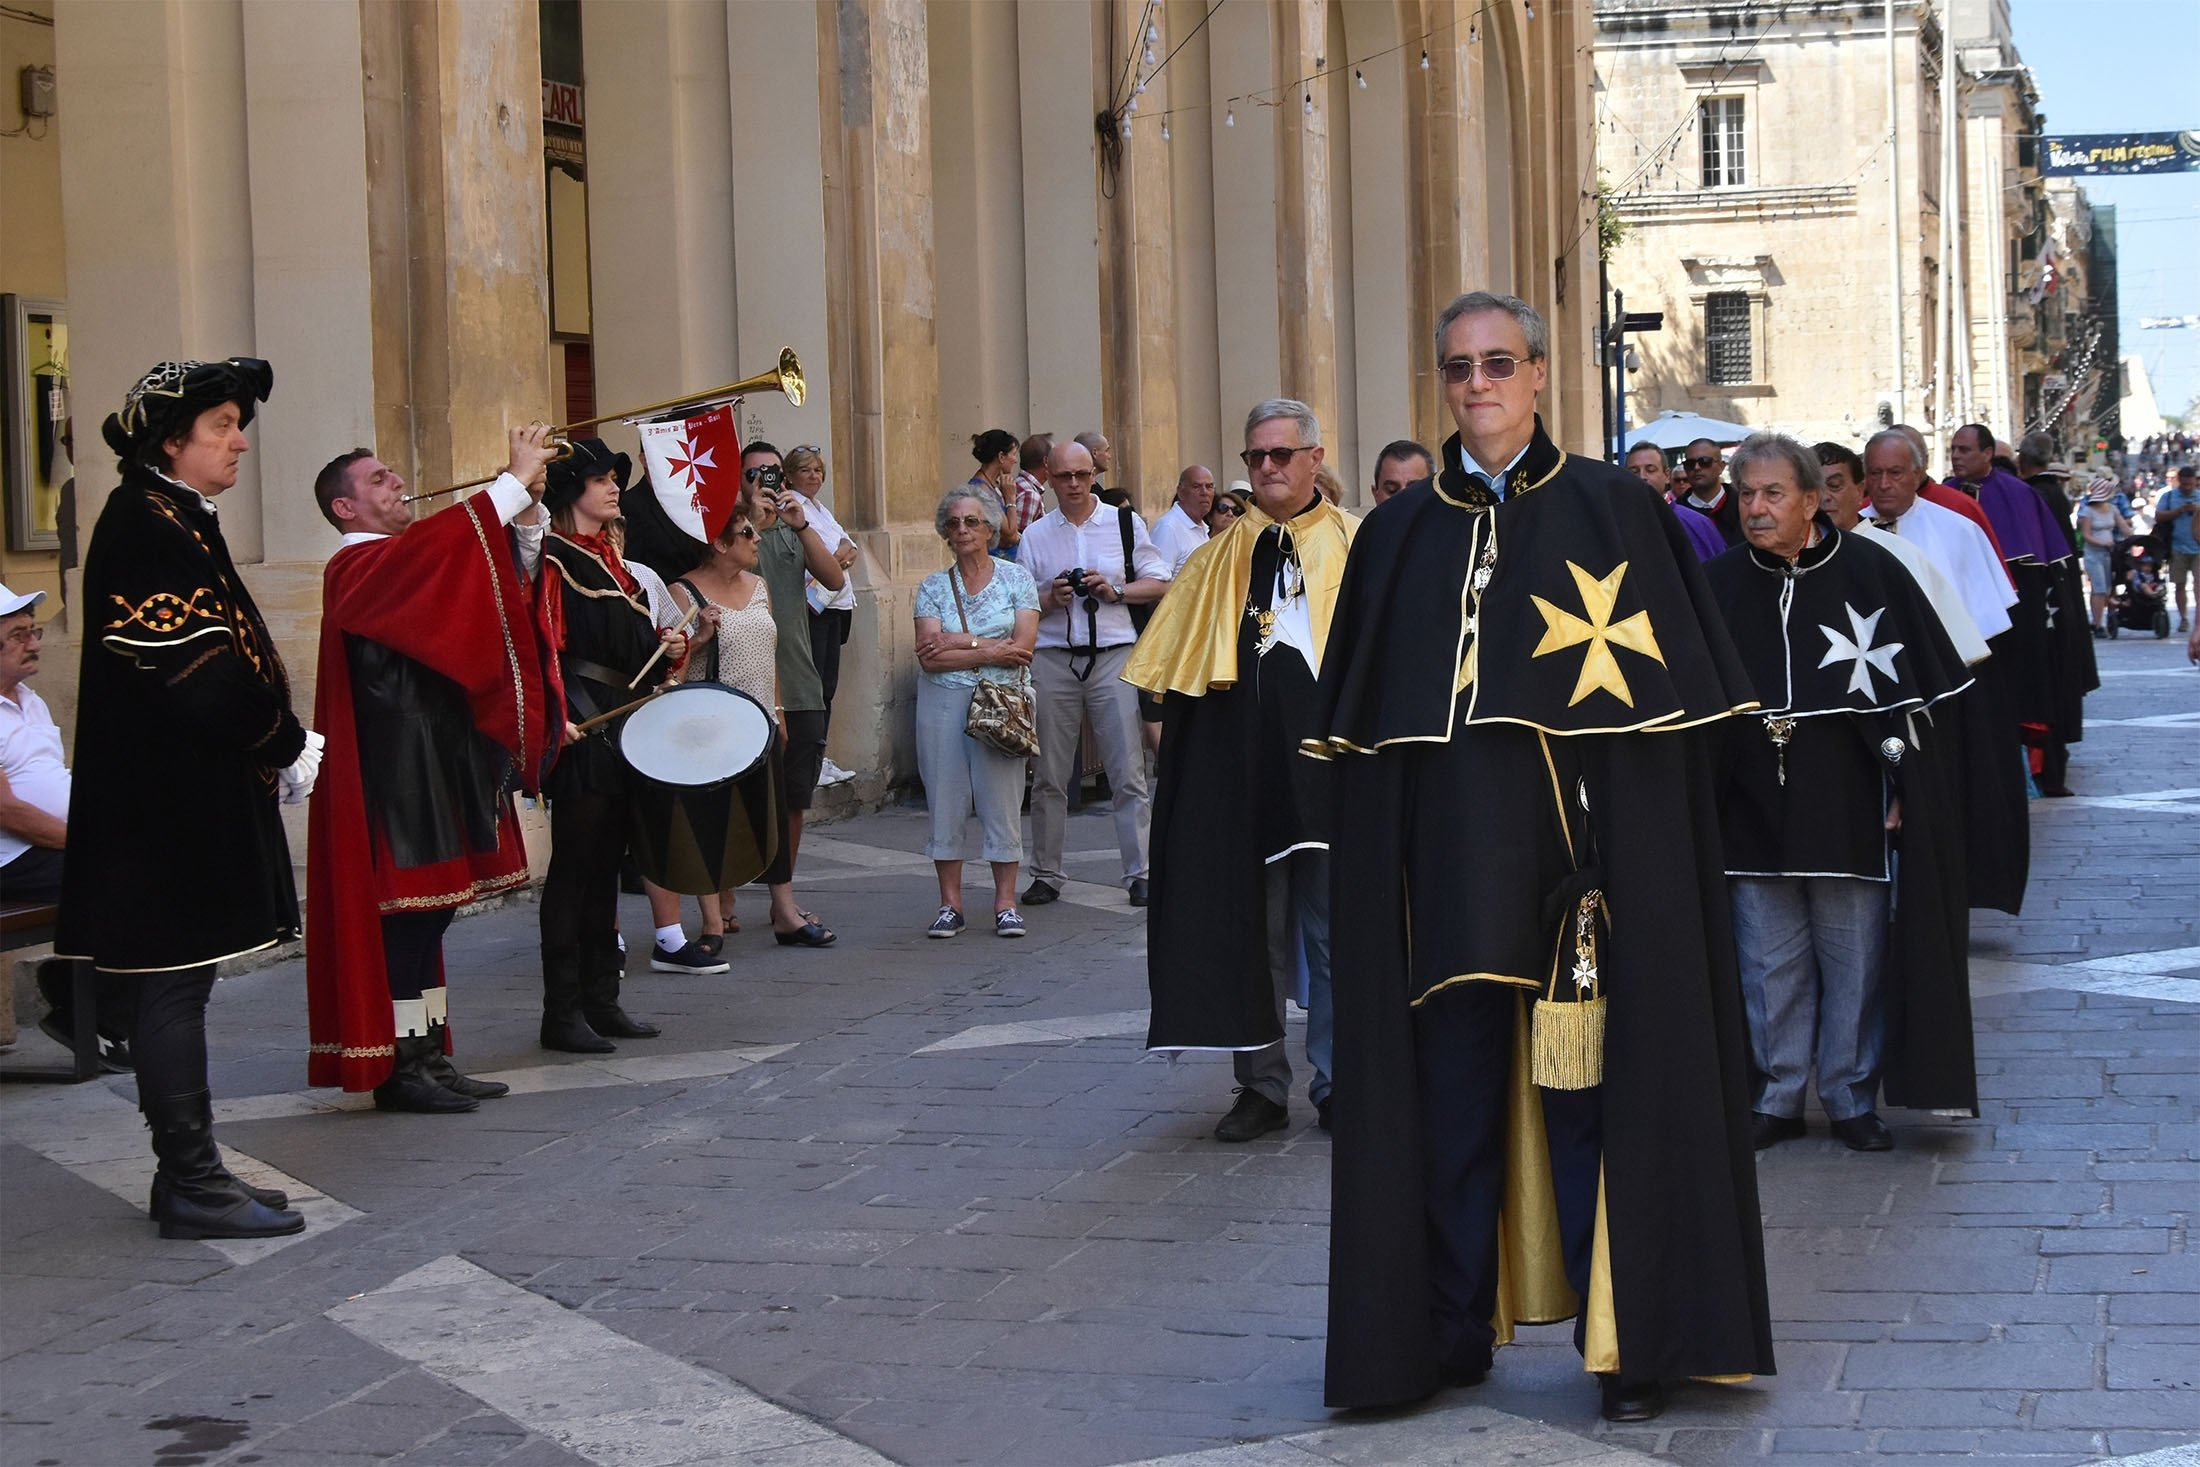 A historical re-enactment of the military parade of theOrder of the Knights of Saint John, or the Knights Hospitaller, can be seen inValletta, Malta, June 25, 2017. (Shutterstock Photo)